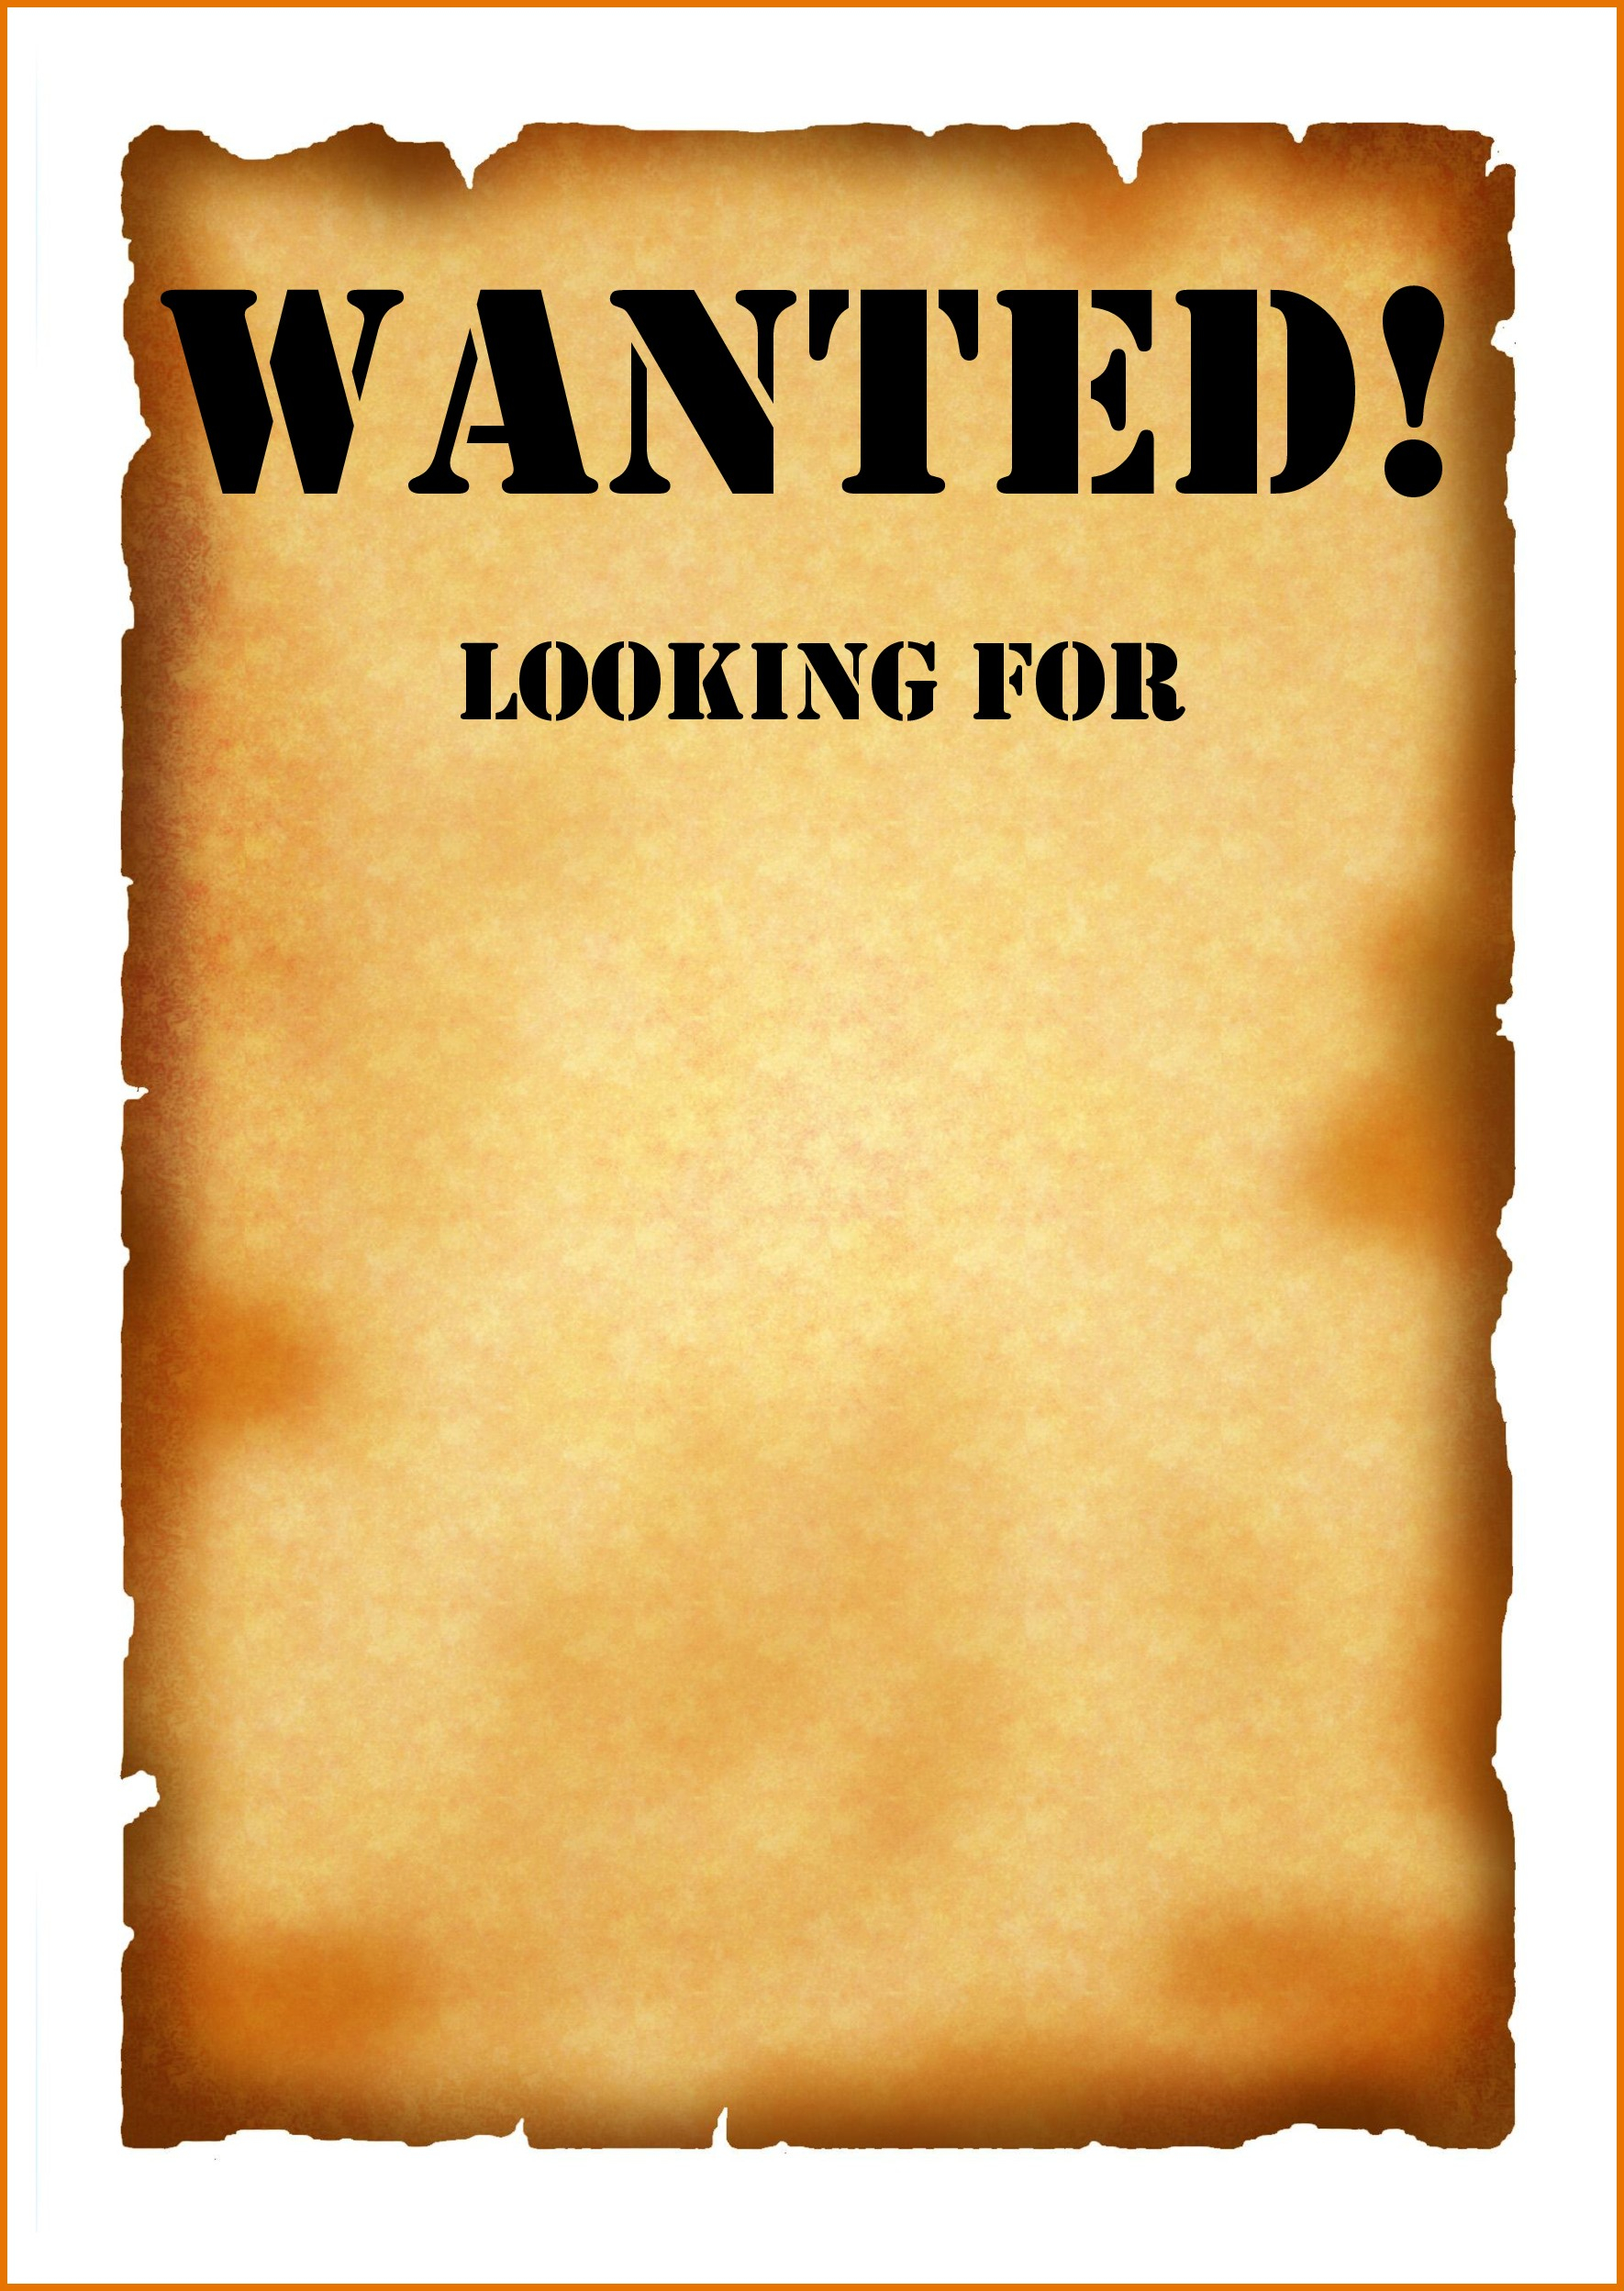 005 Template Ideas Blank Wanted Poster With Make Free Download - Free Printable Wanted Poster Invitations